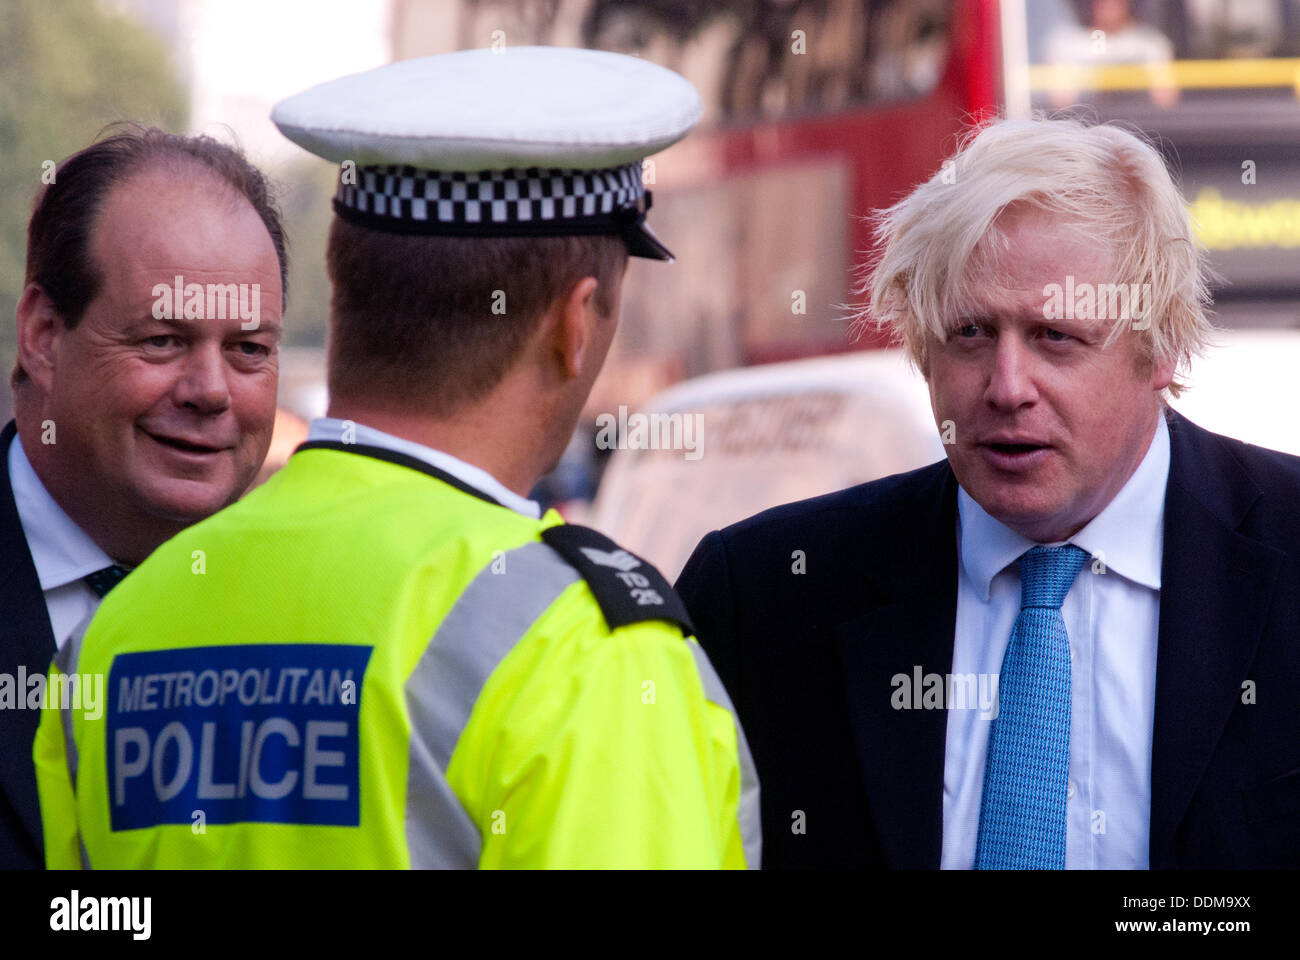 London, UK - 4 September 2013: the Mayor of London Boris Johnson and the Transport Minister Stephen Hammond take part in the Metropolitan Police 'Exchanging Places' event, organised to raise awareness of the safety issues faced by lorry drivers and cyclists. Credit:  Piero Cruciatti/Alamy Live News - Stock Image